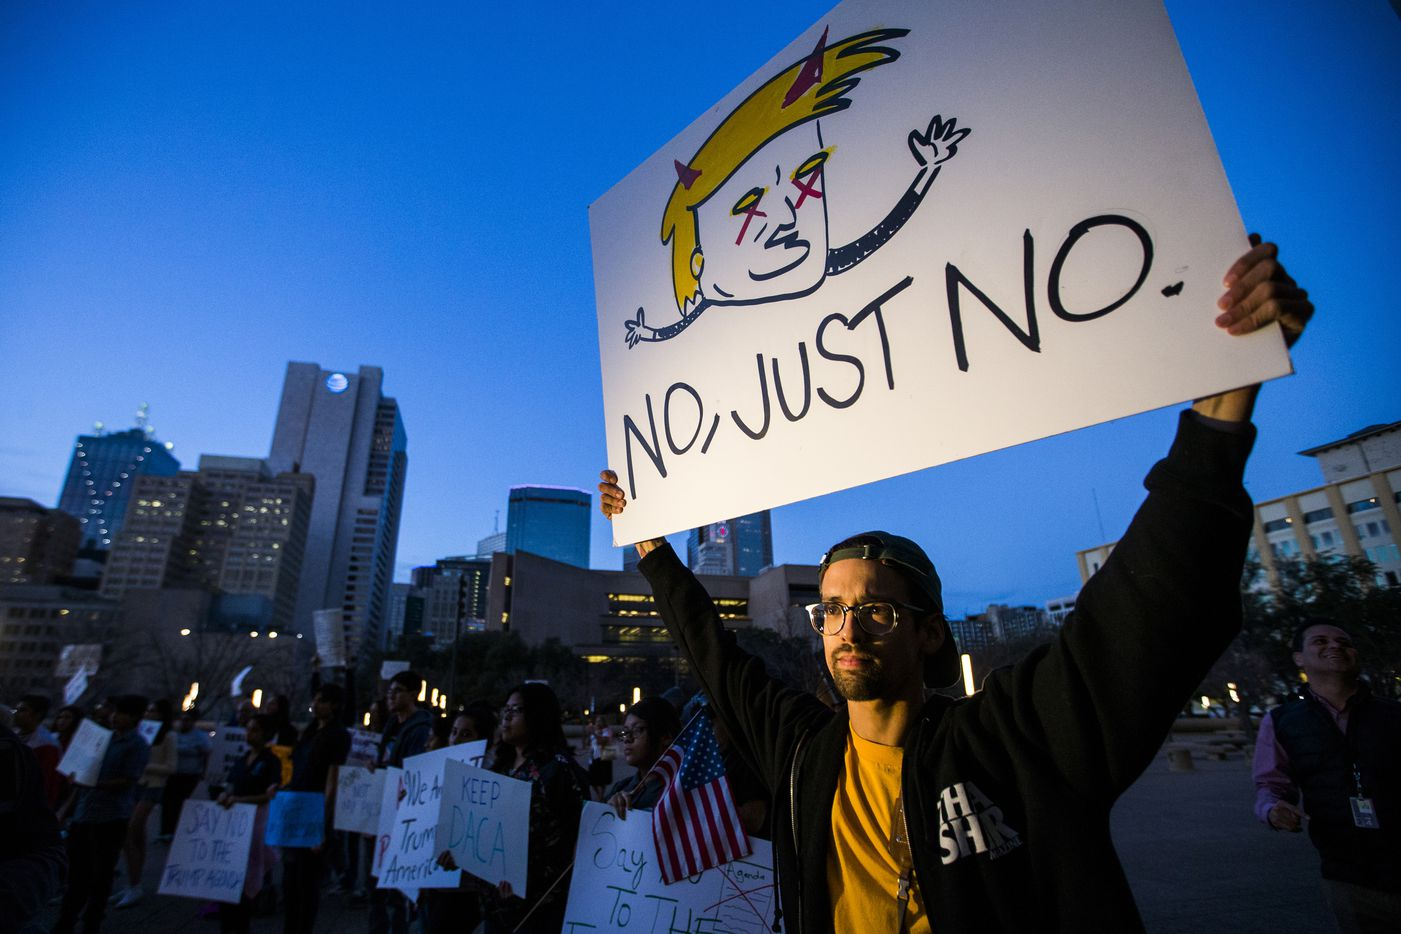 Jonathan Smith of Dallas holds a sign in opposition to the inauguration of Donald Trump during a rally at Dallas City Hall on Friday, Jan. 20, 2017, in Dallas.